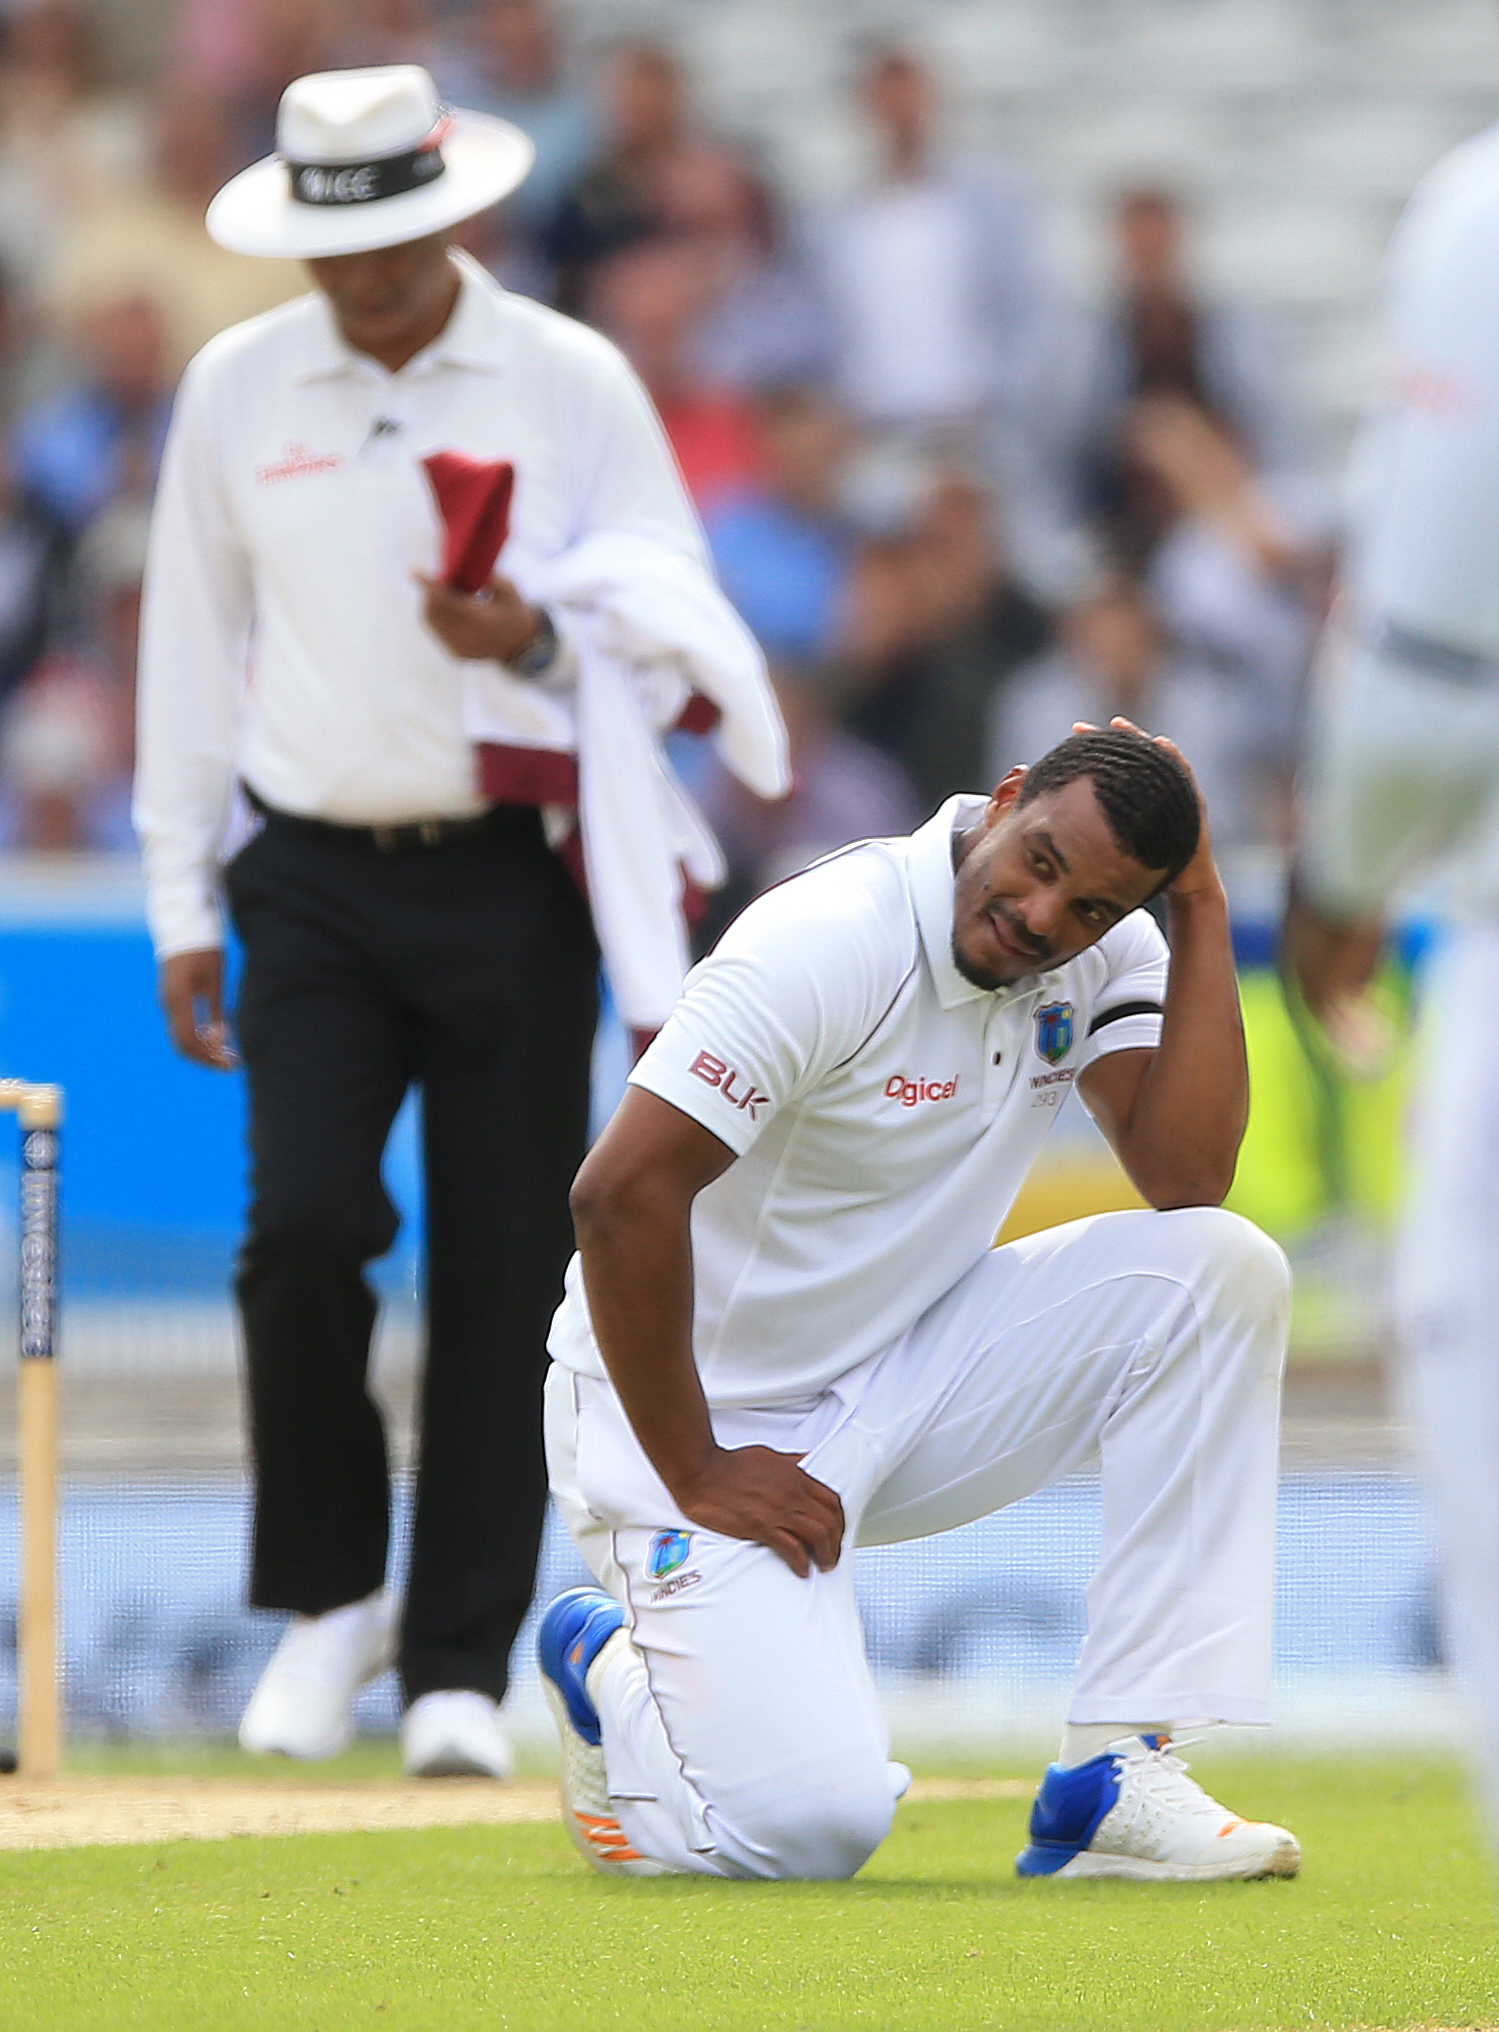 Bowler Gabriel was confronted by the England captain but no formal complaint was made about his language. Credit: PA